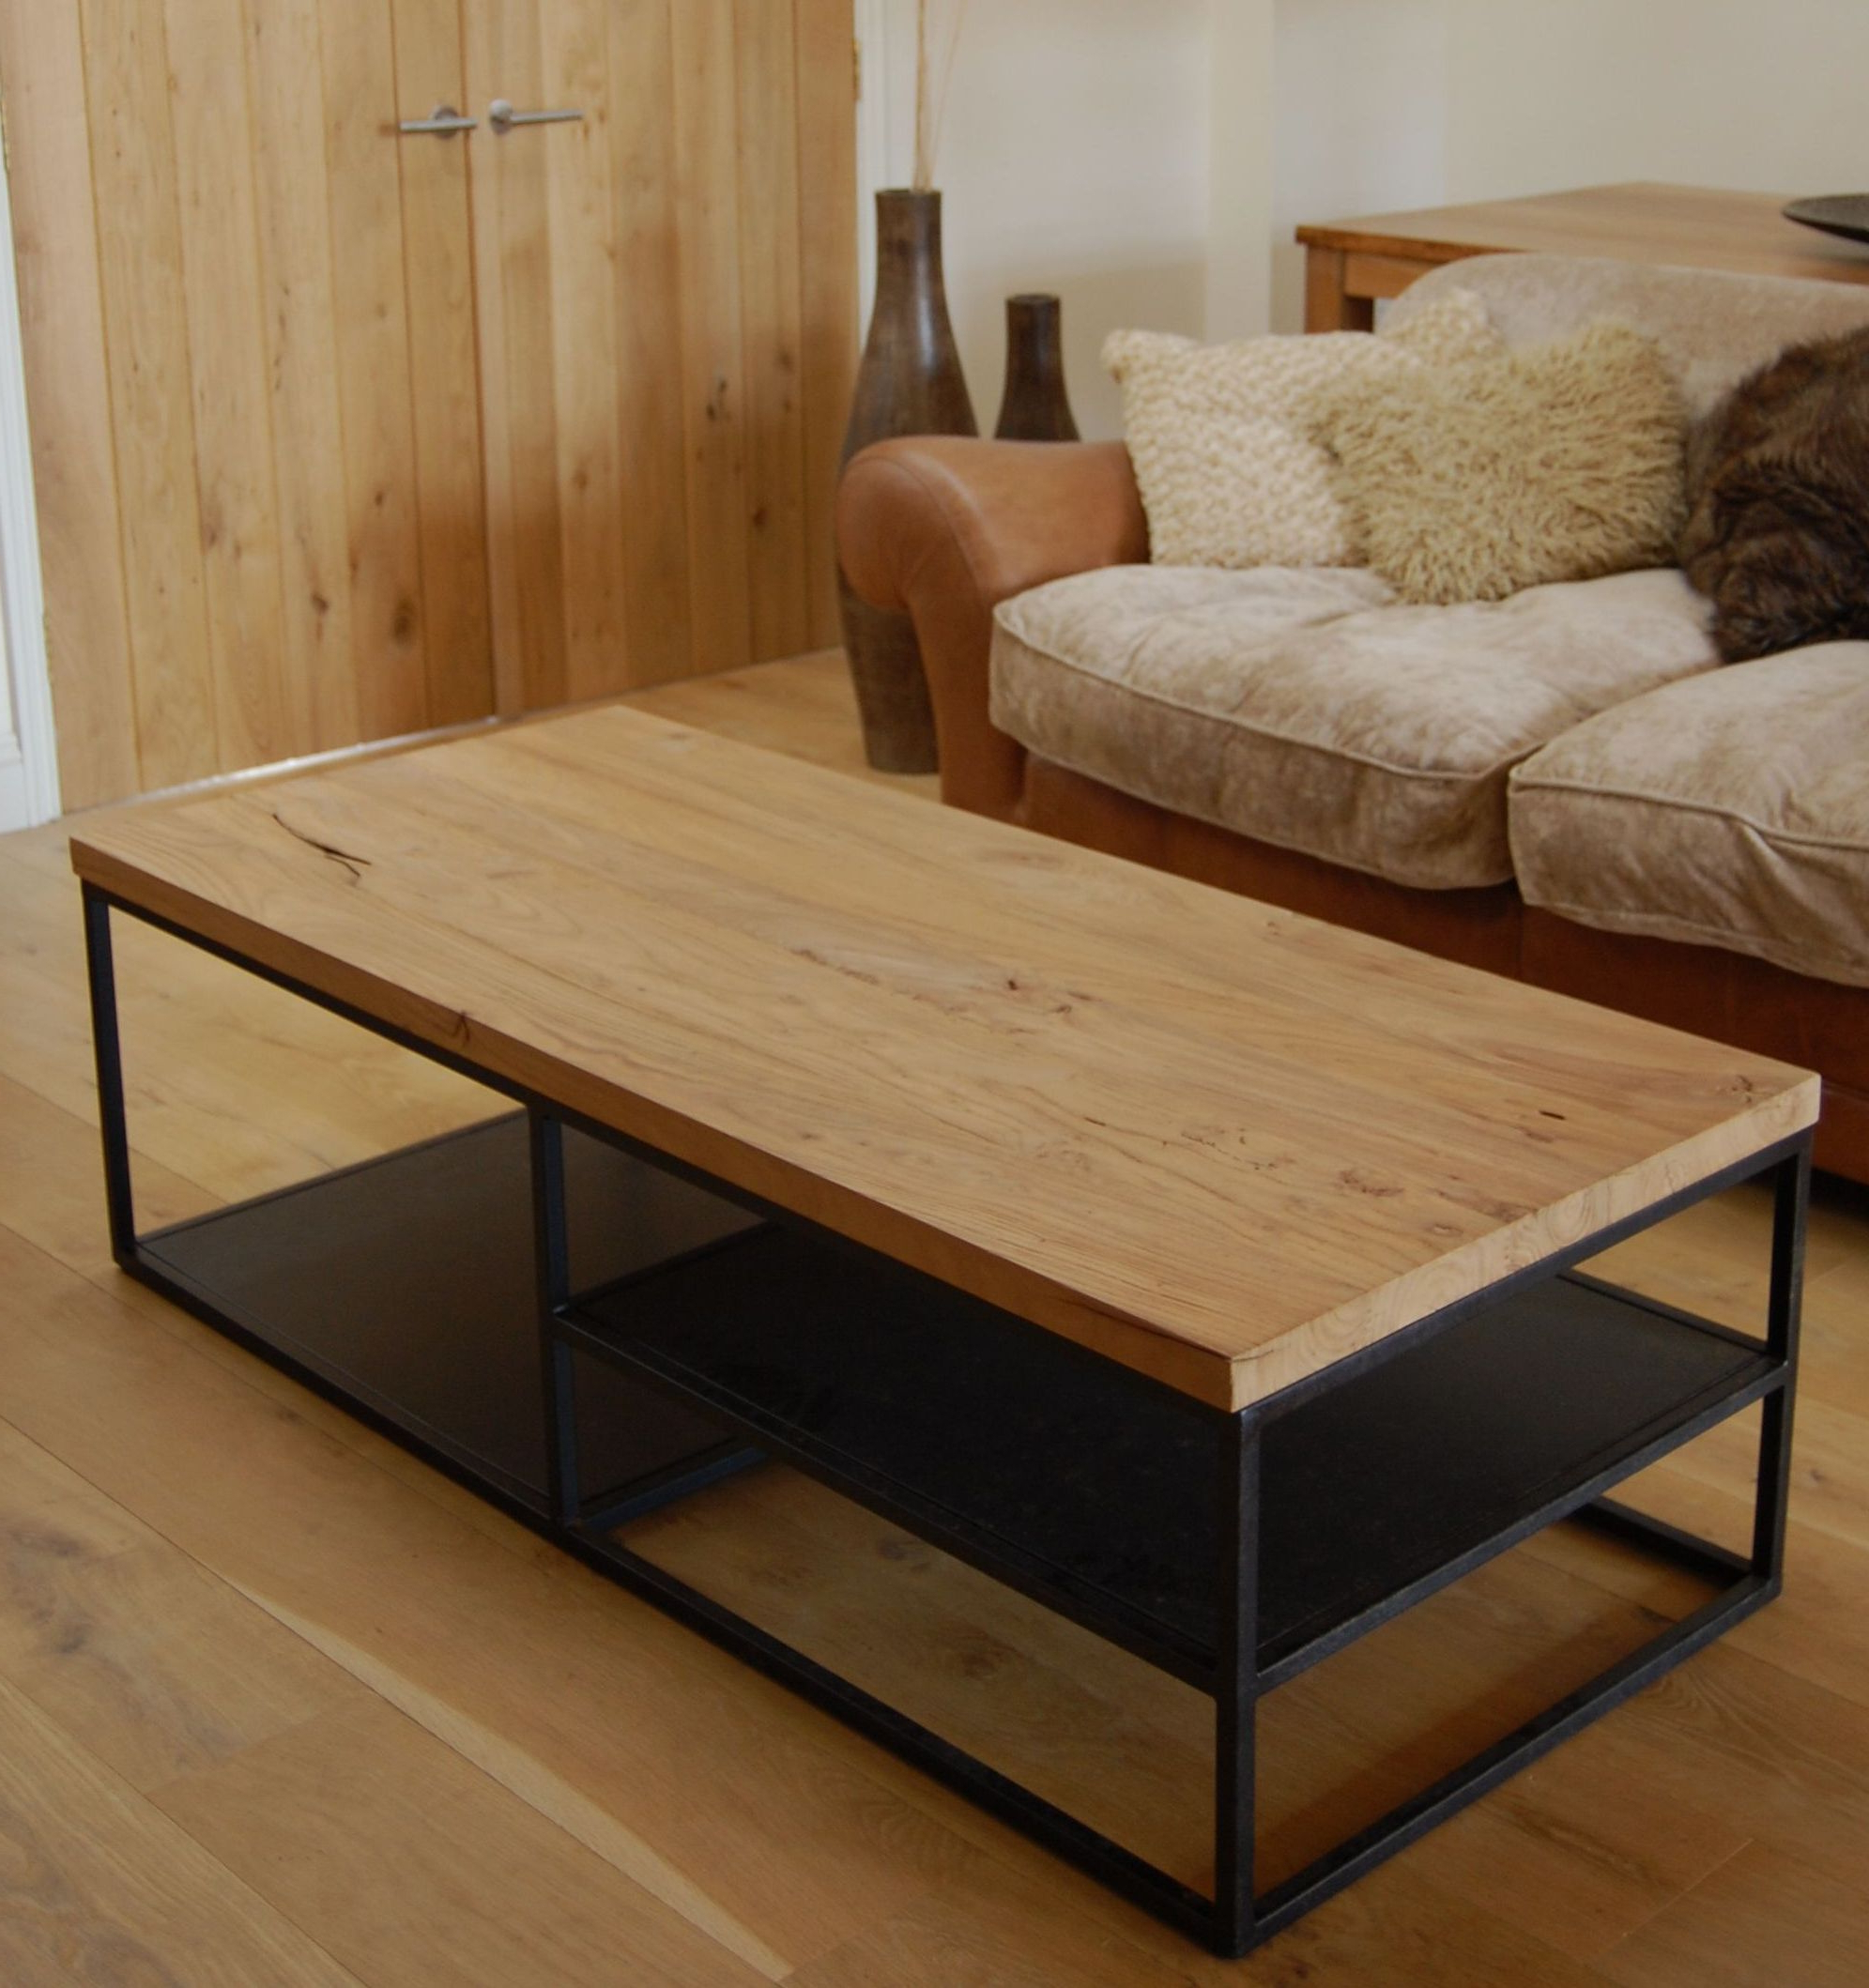 Trendy Iron Wood Coffee Tables With Wheels Inside Reclaimed Wood And Iron Coffee Table (View 19 of 20)